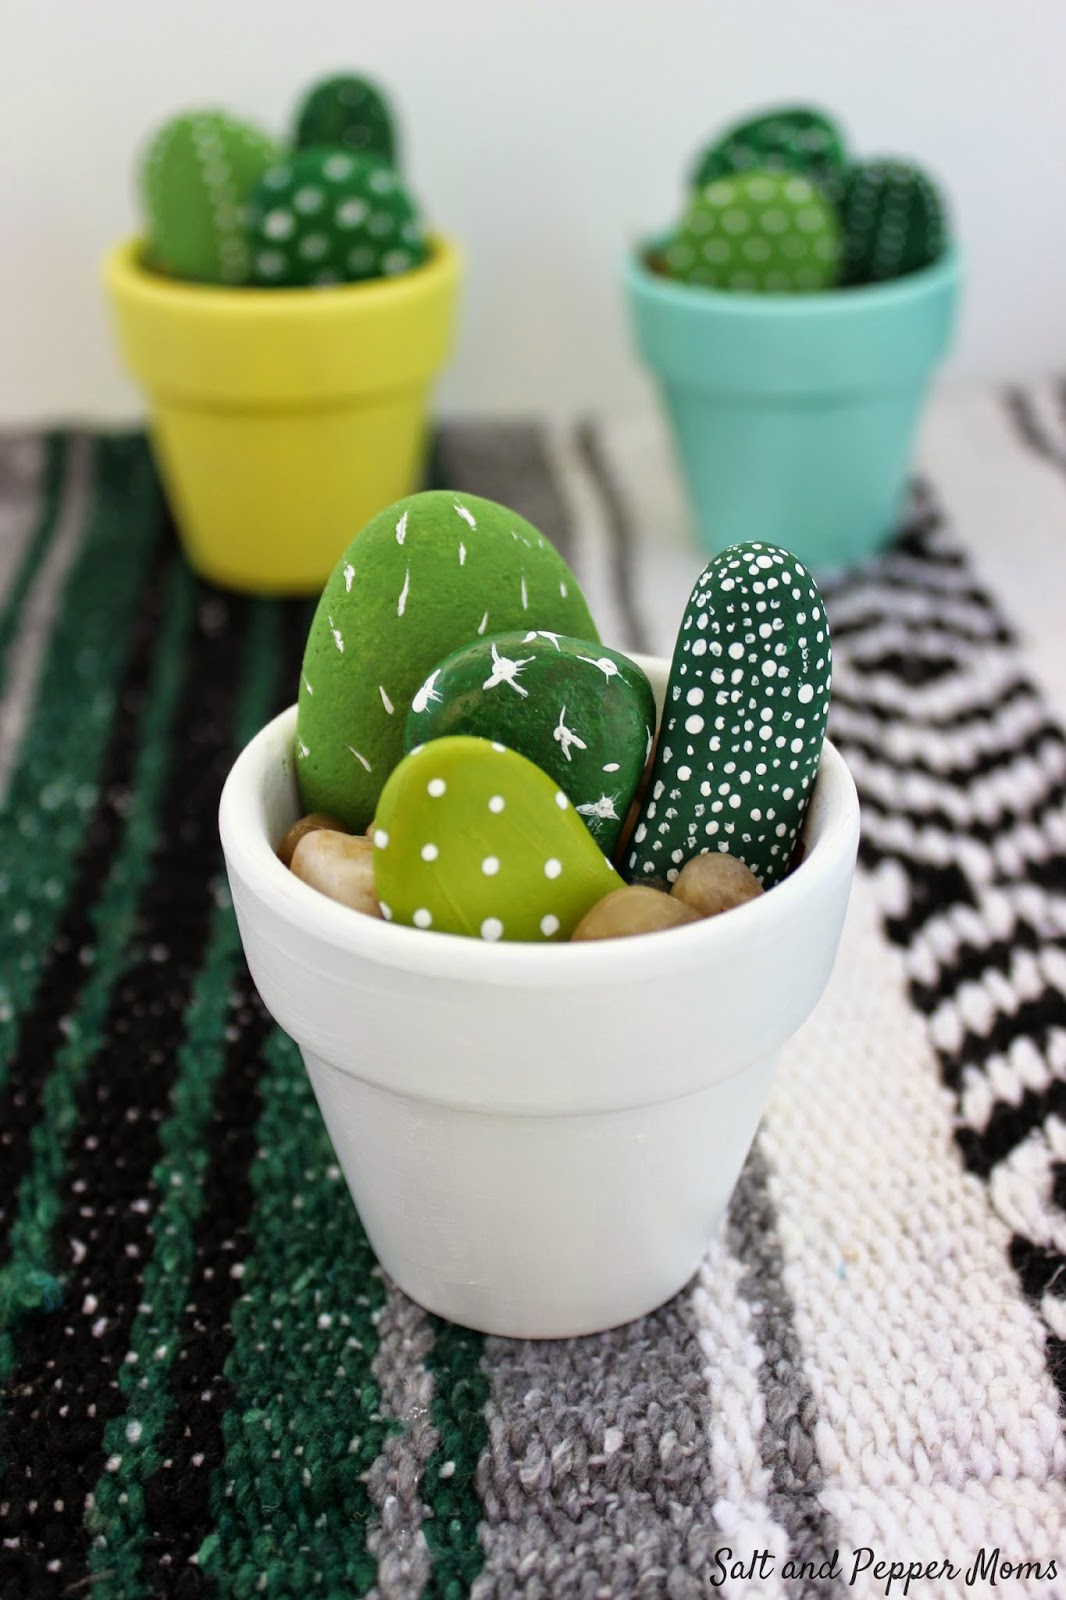 Cactus Rock Garden Adult Craft Workshop